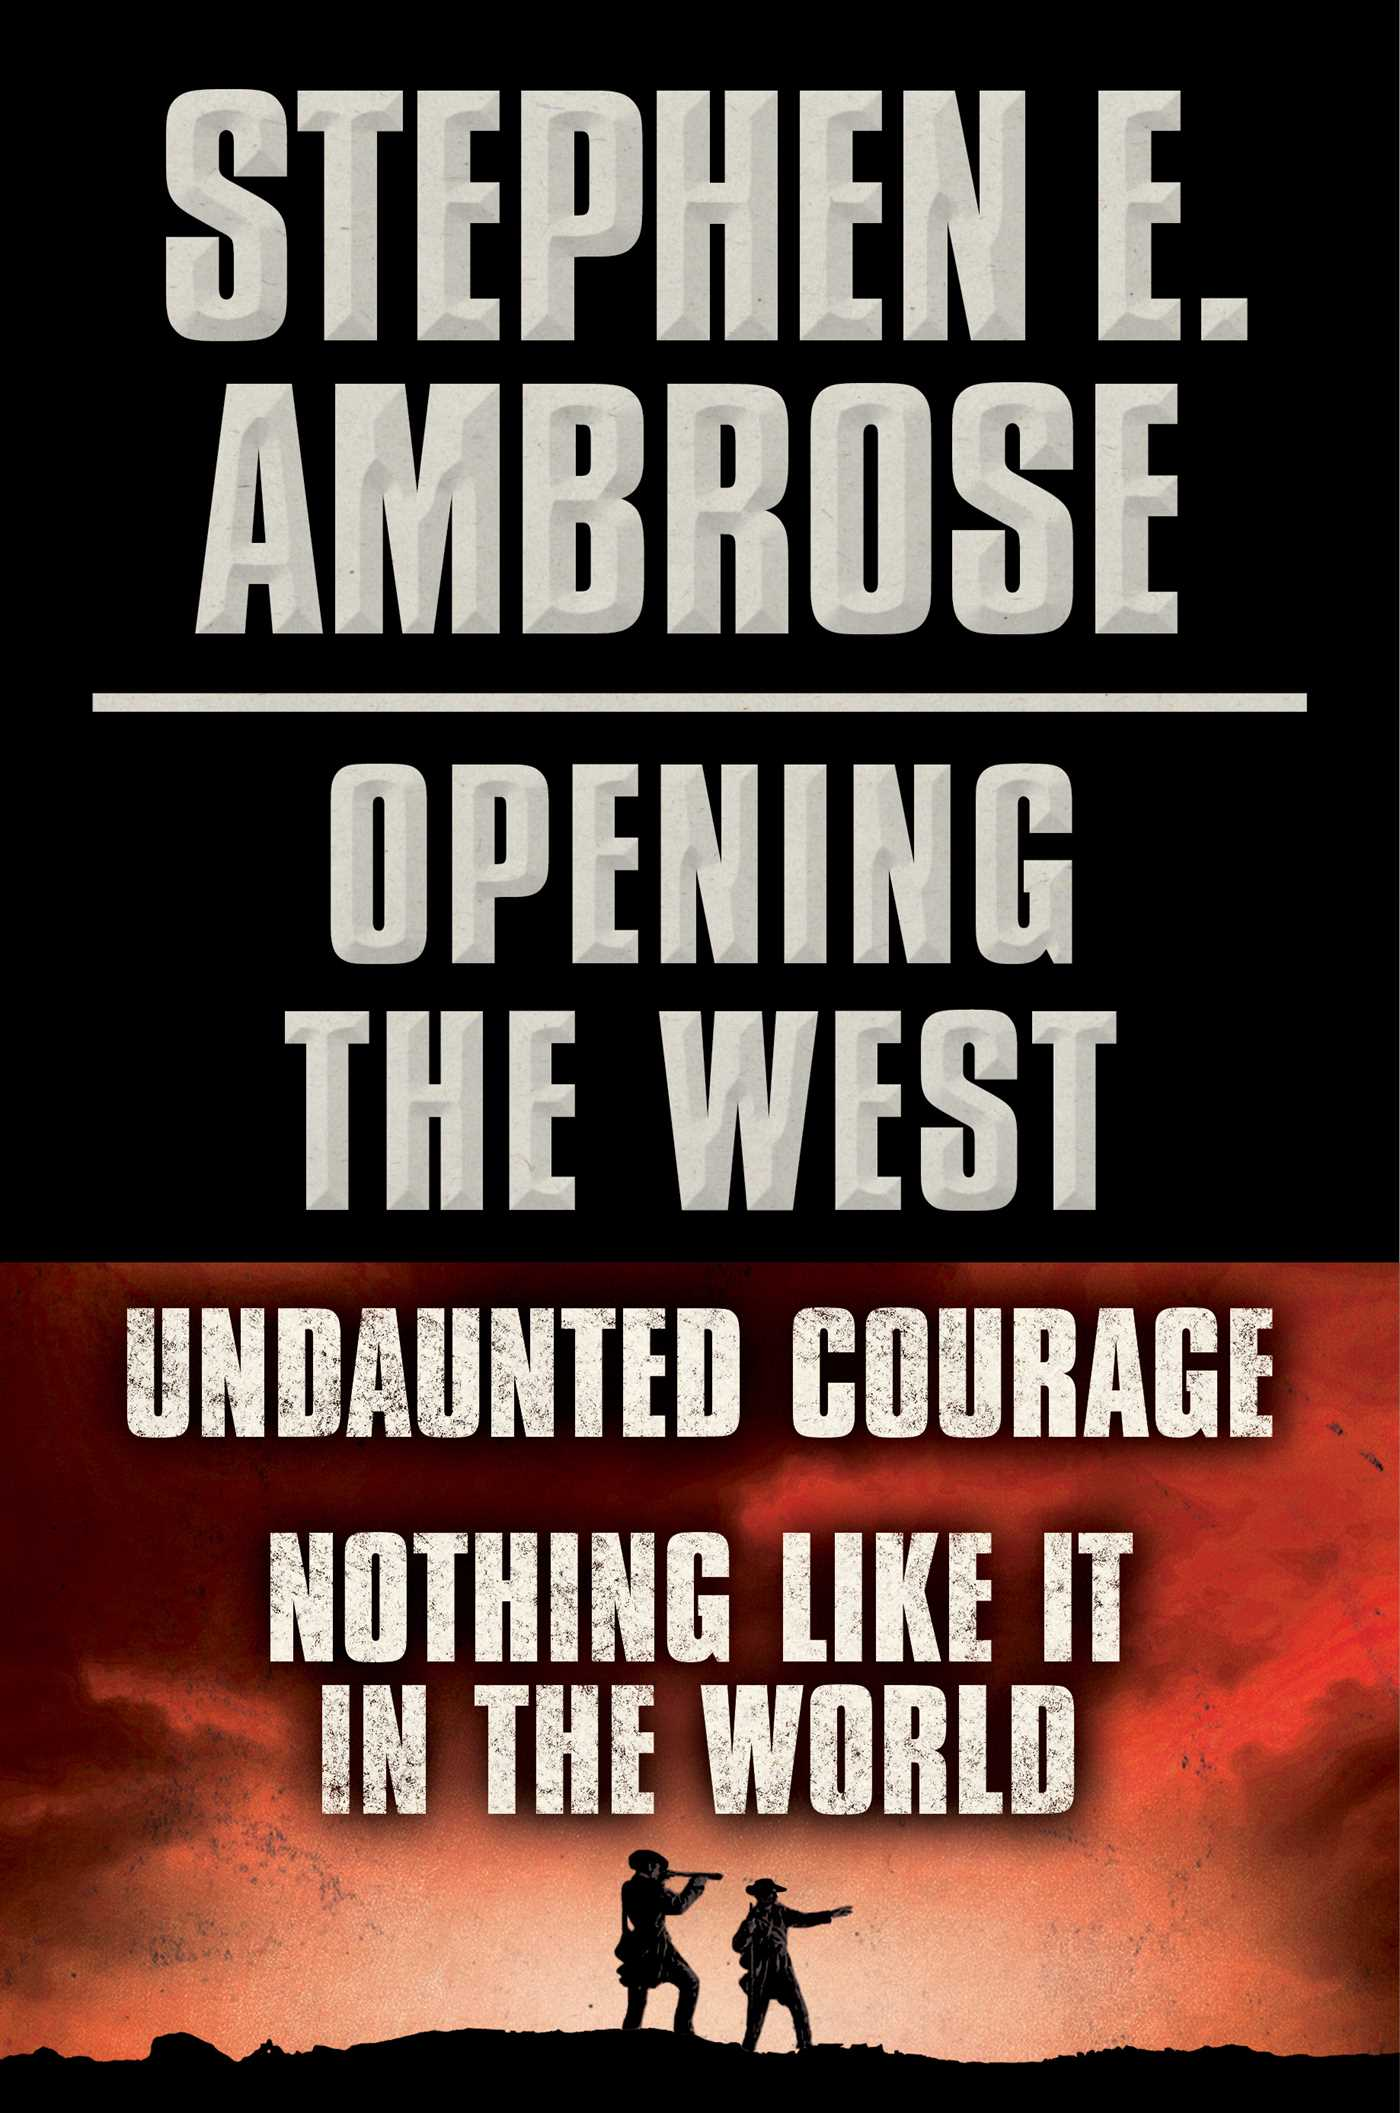 Stephen e ambrose opening of the west e book boxed set 9781476756936 hr